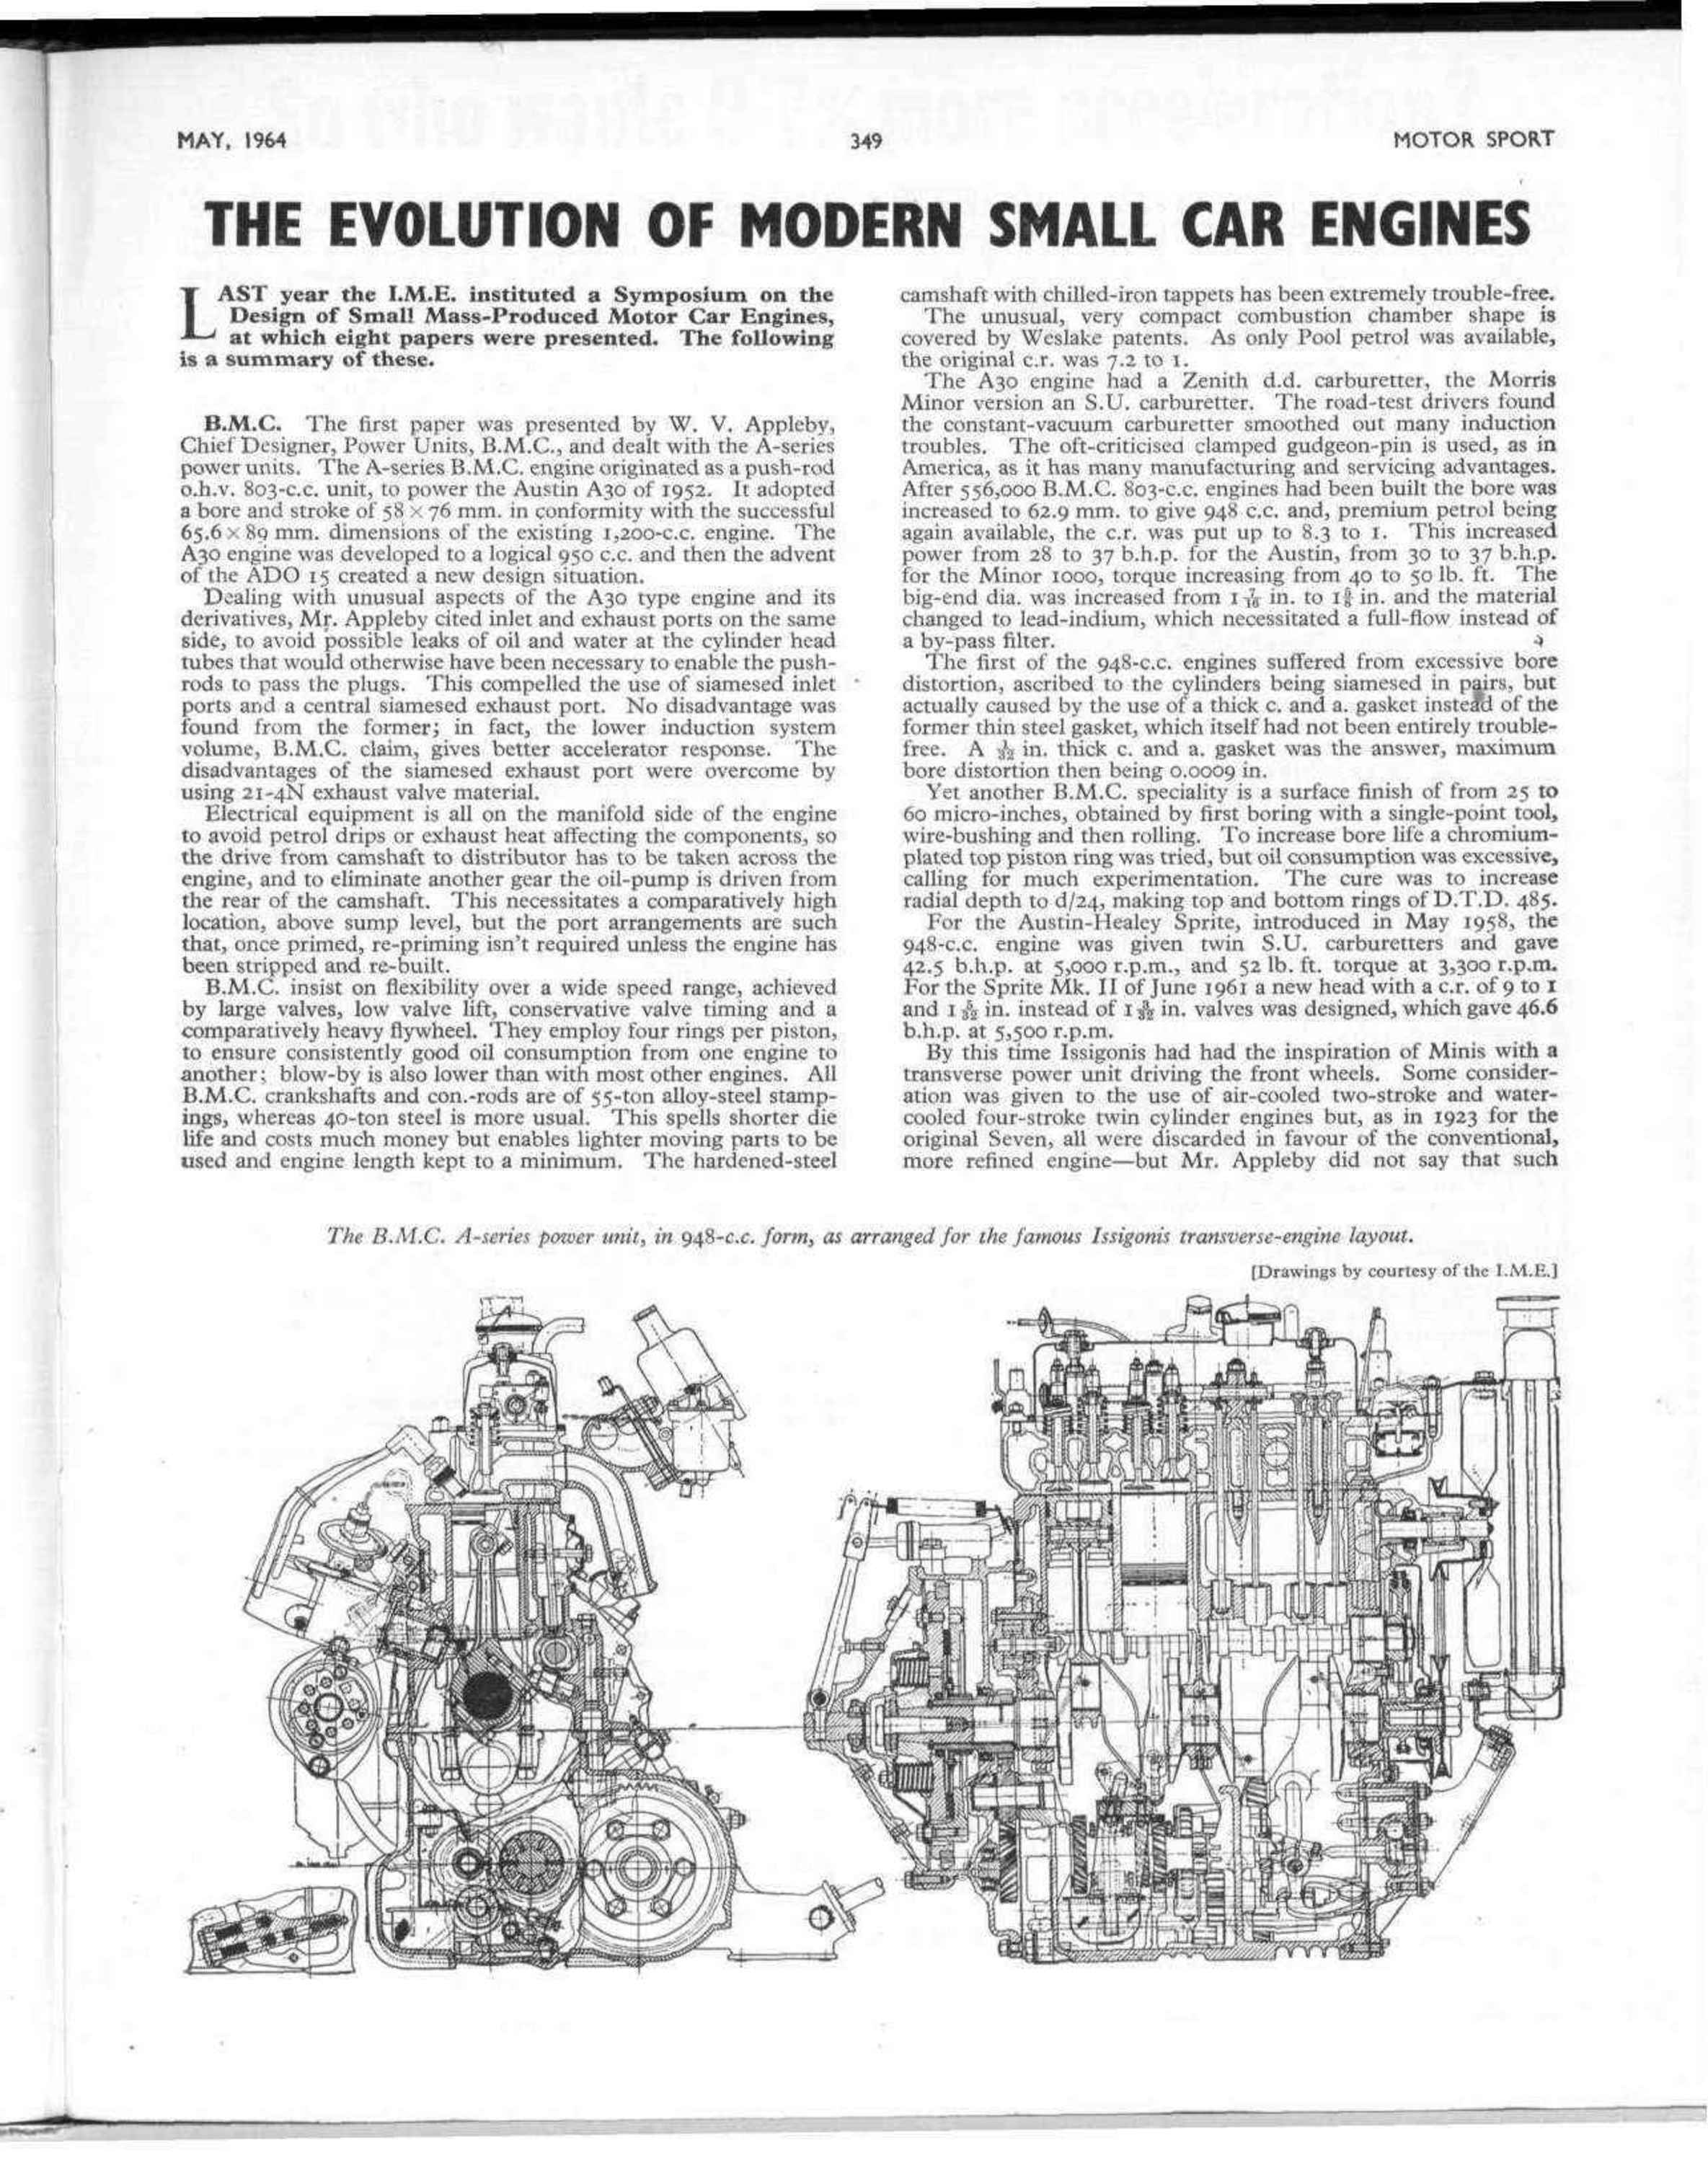 The Evolution of Modern Small Car Engines | Motor Sport Magazine Archive